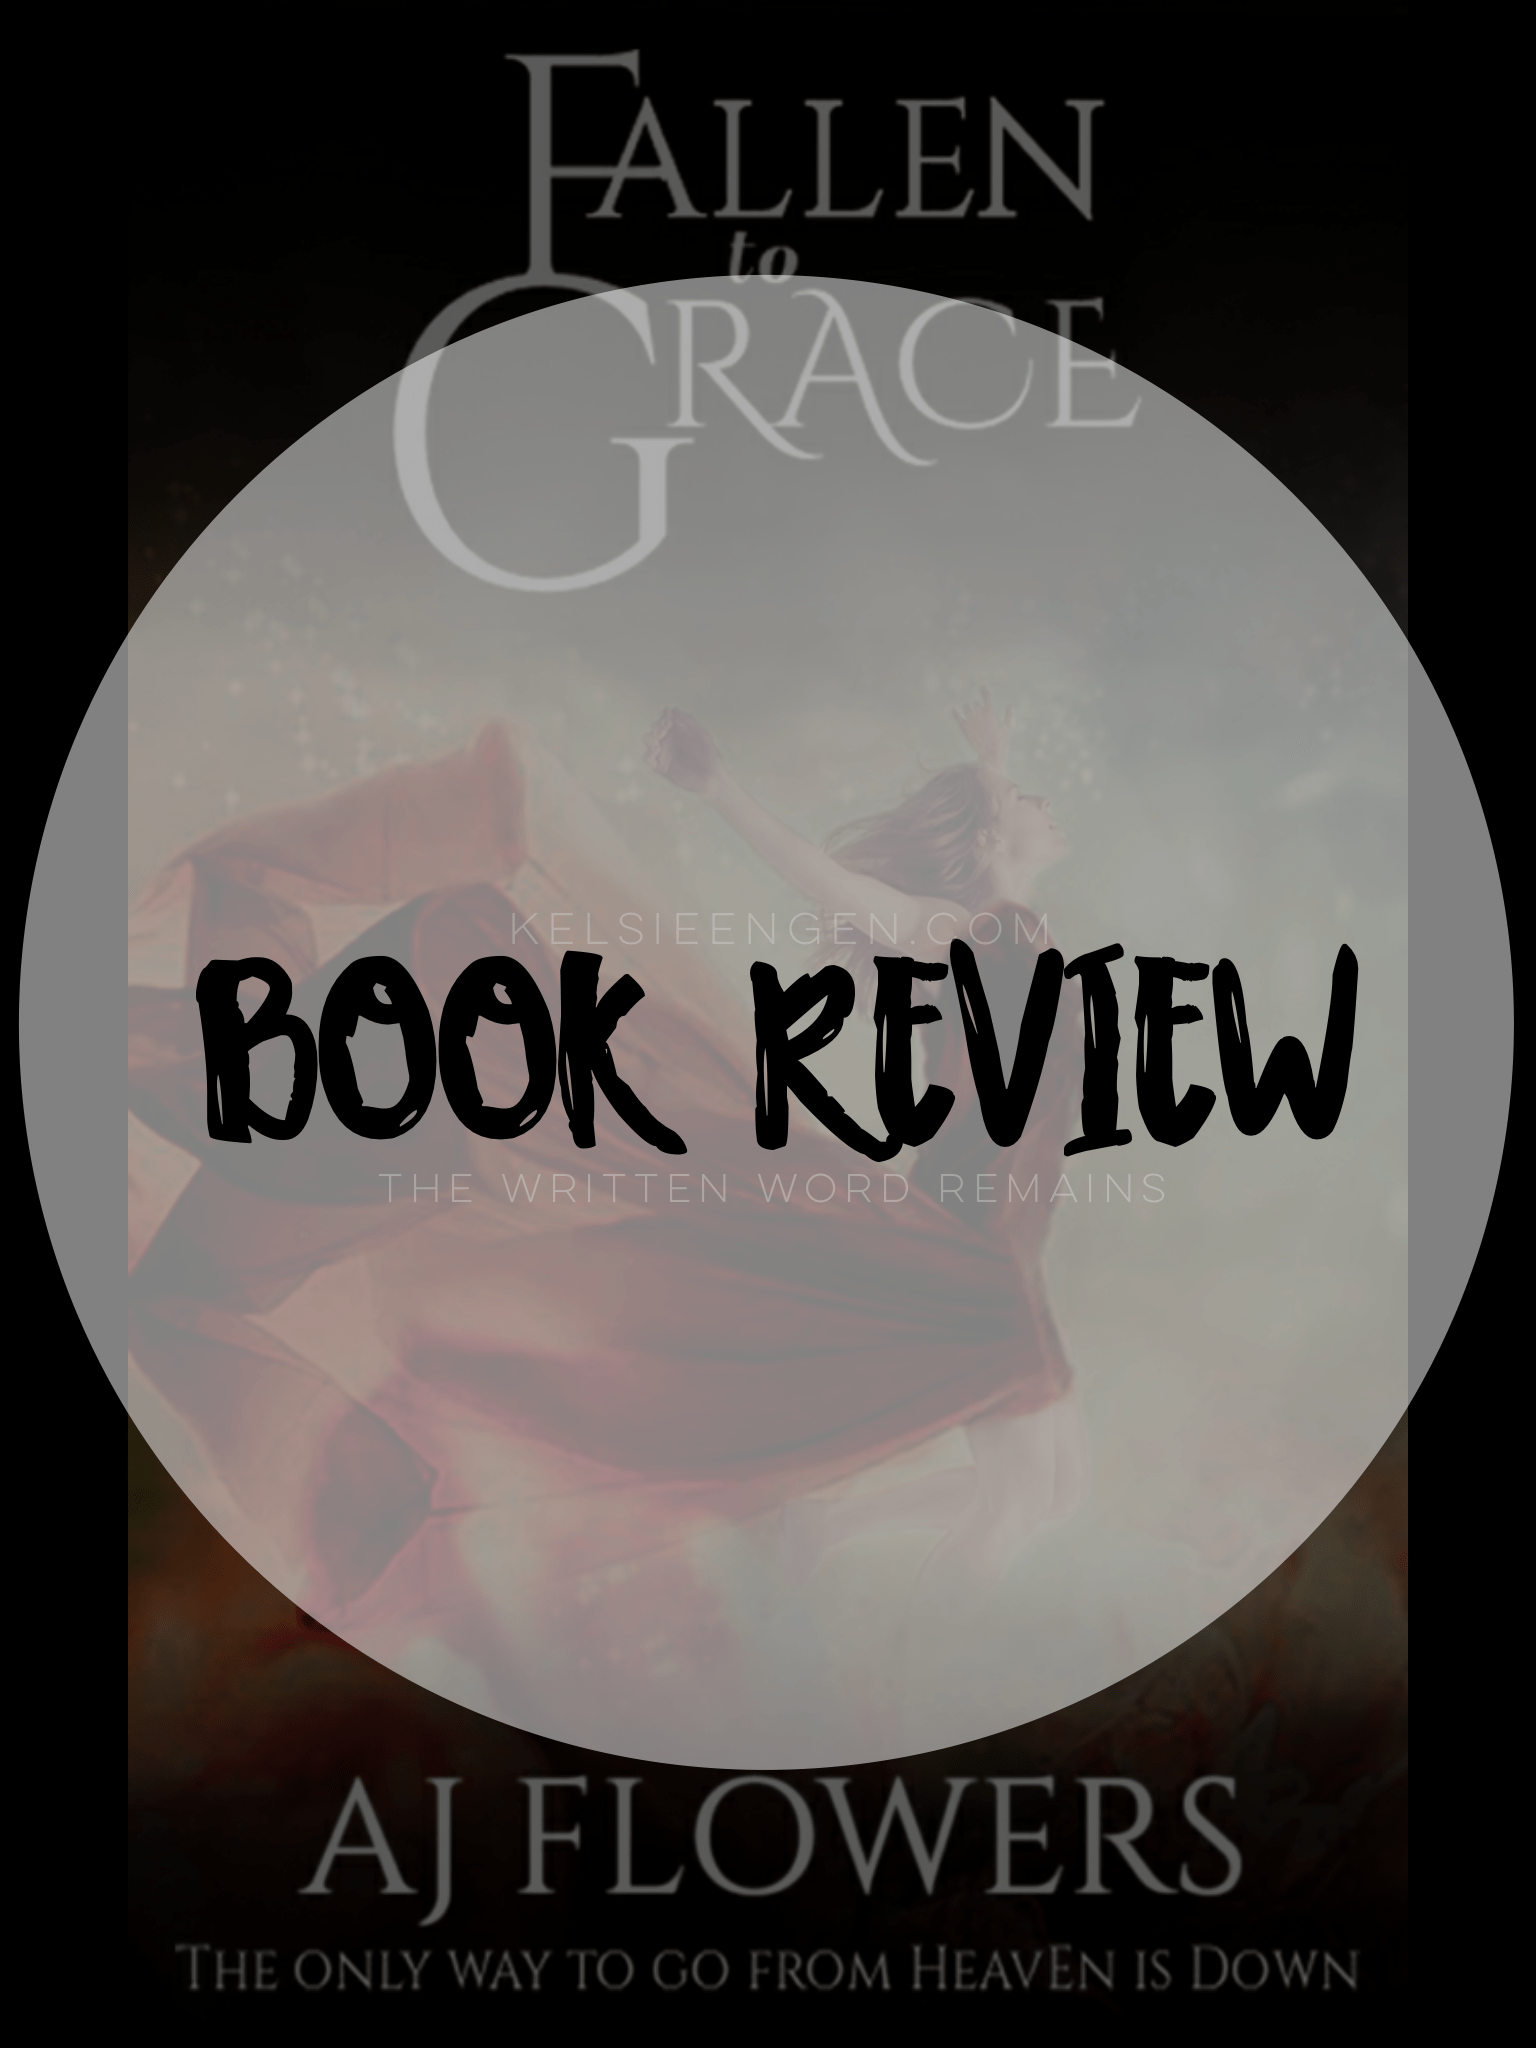 Book Review: Fallen to Grace